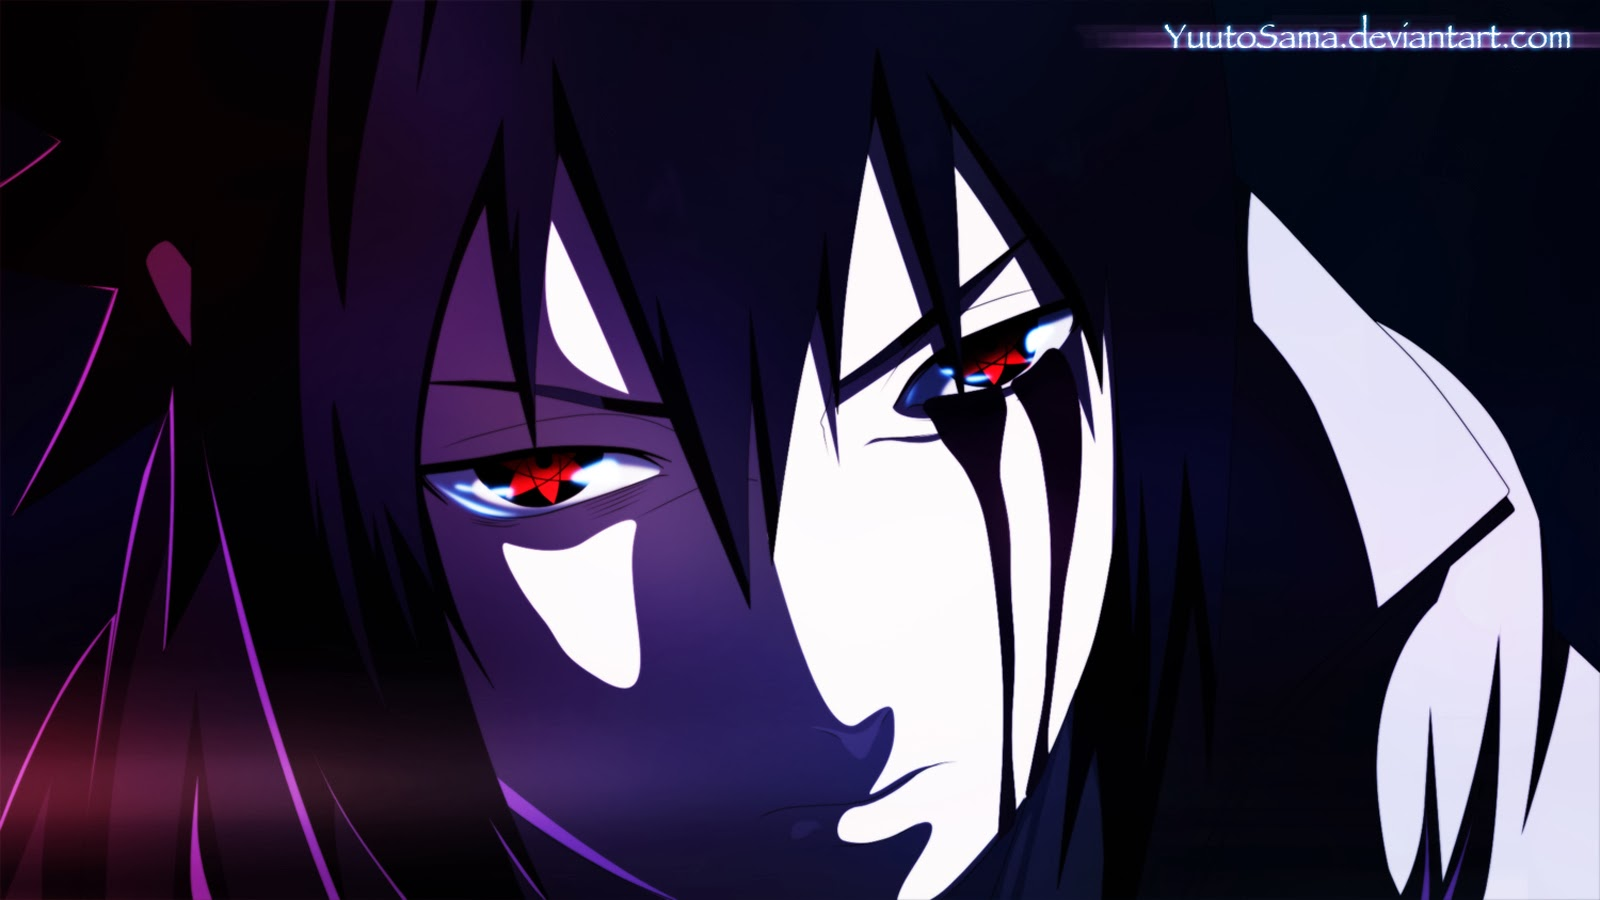 Sasuke Uchiha Mangekyou Sharingan Eyes Hd Anime Wallpaper 1600x900